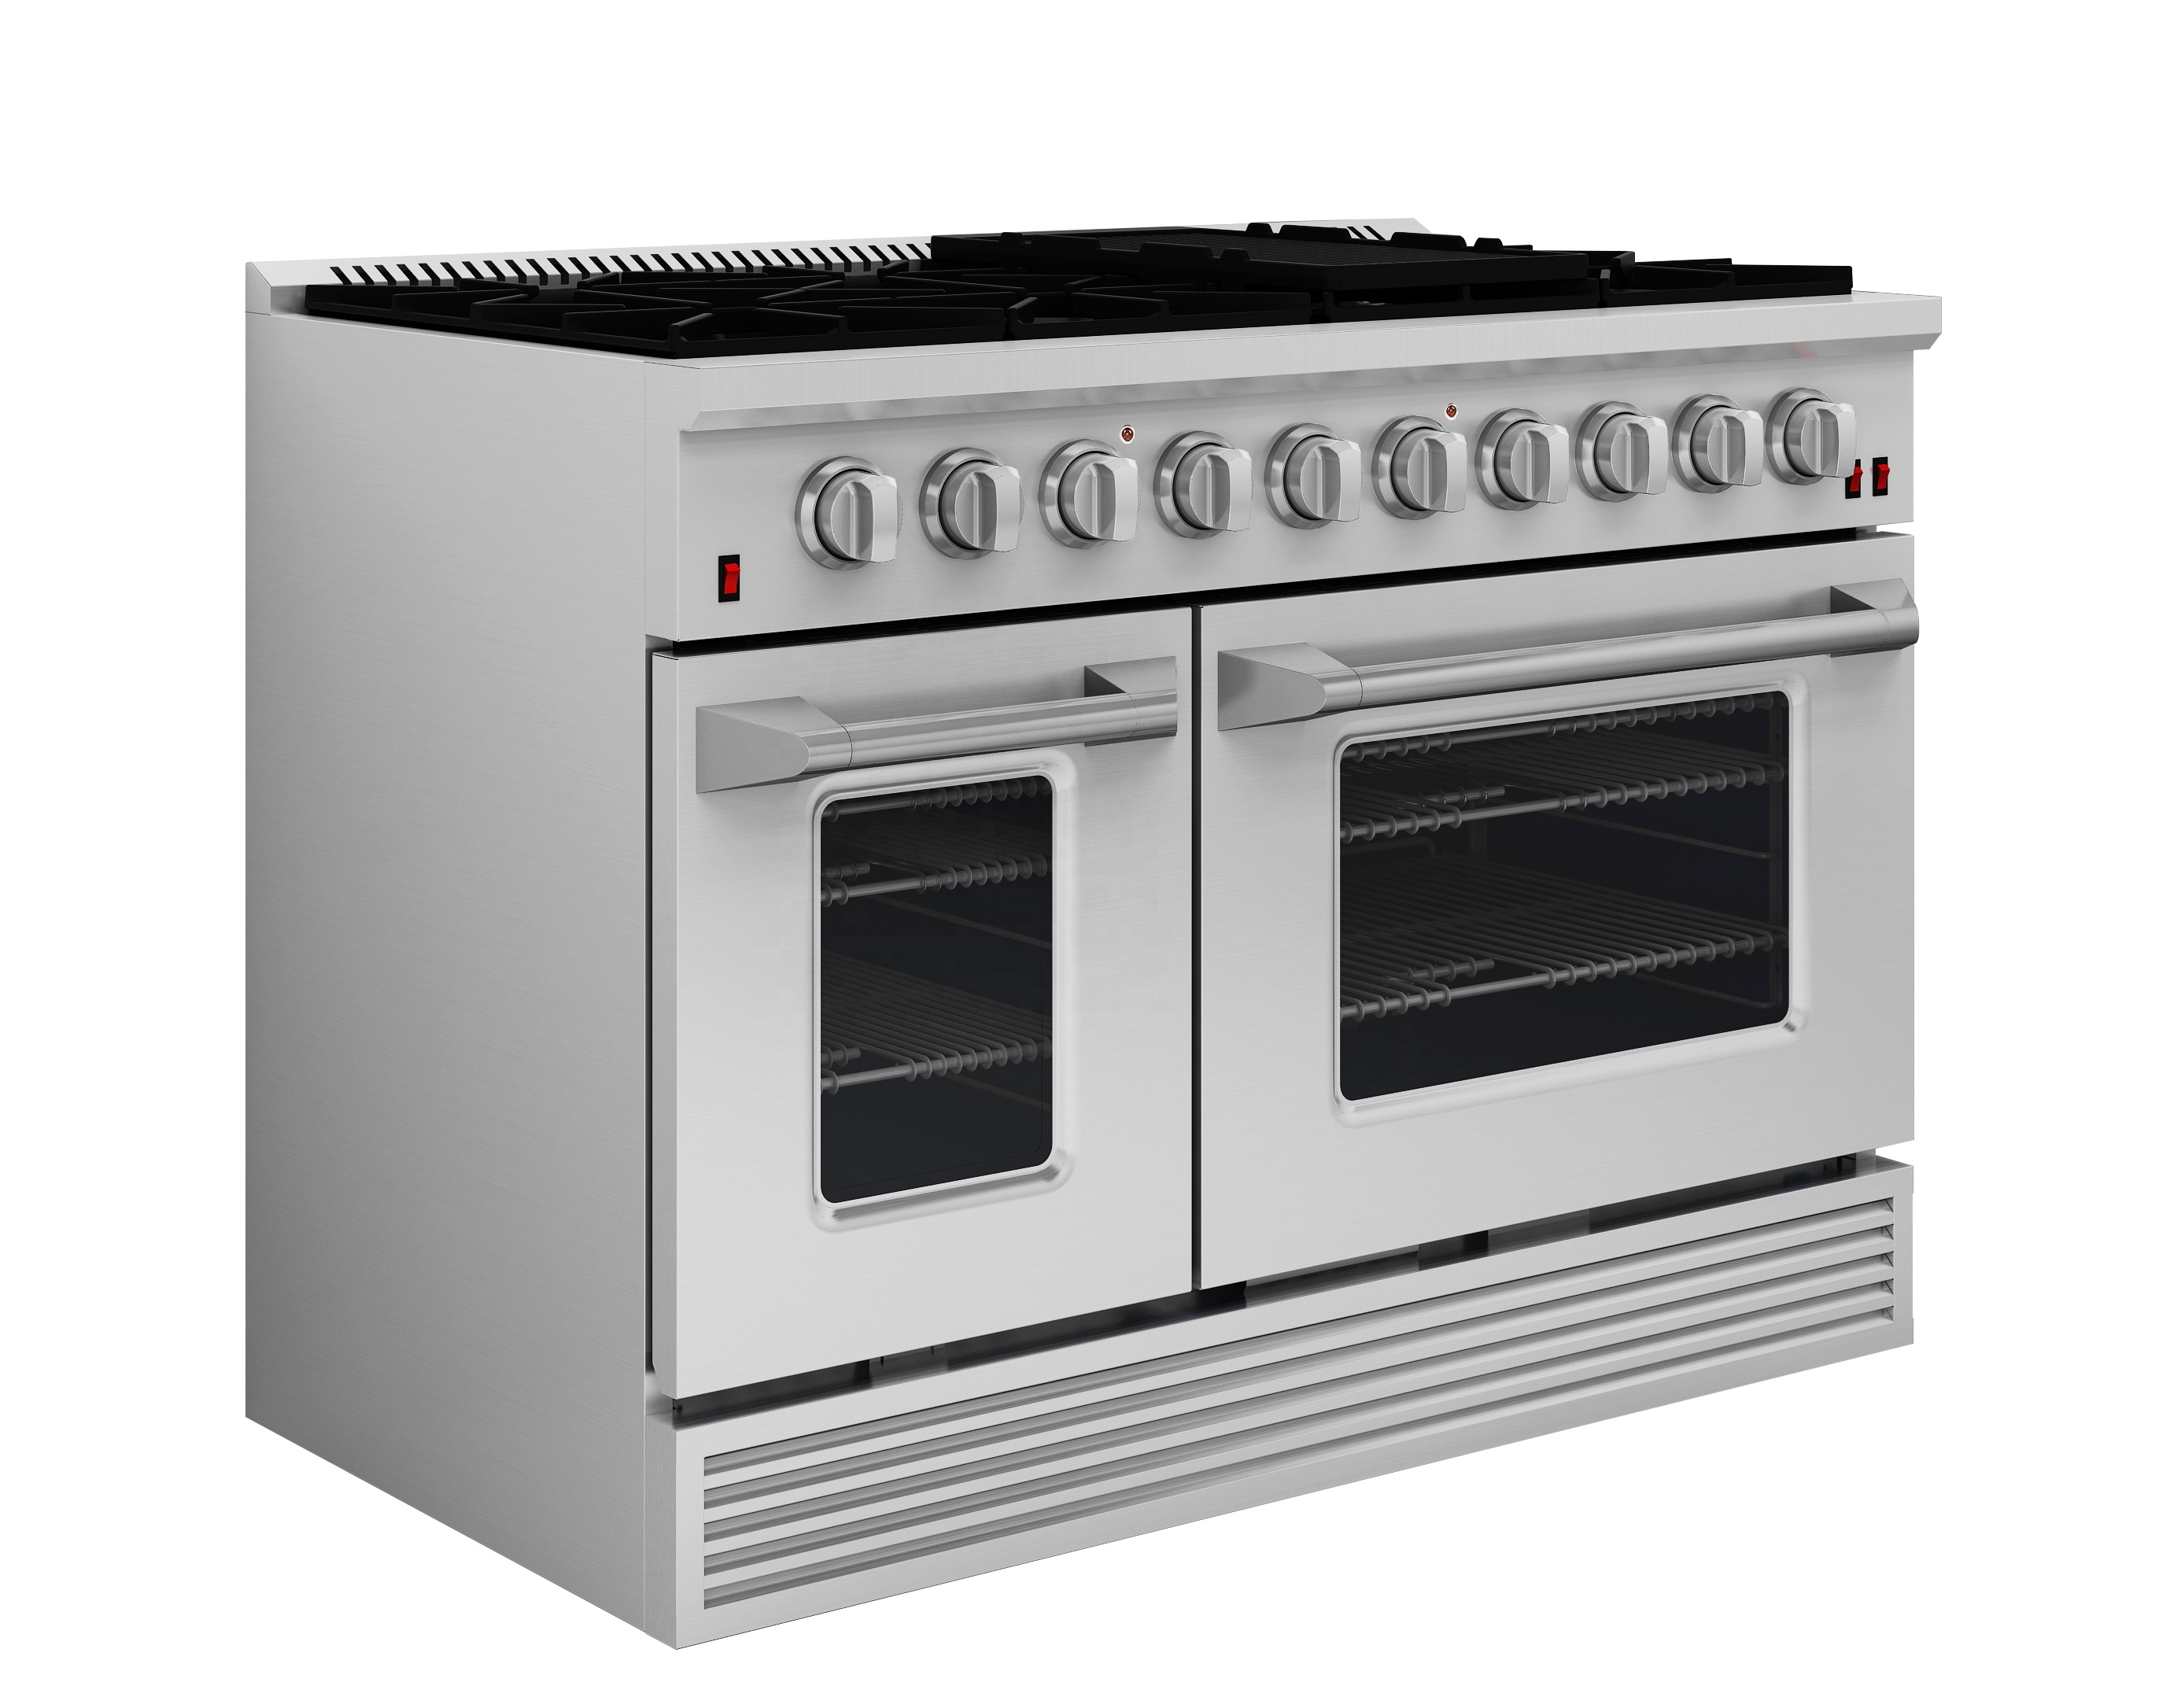 SENG 48 inch range CSA professional gas stove with griddle